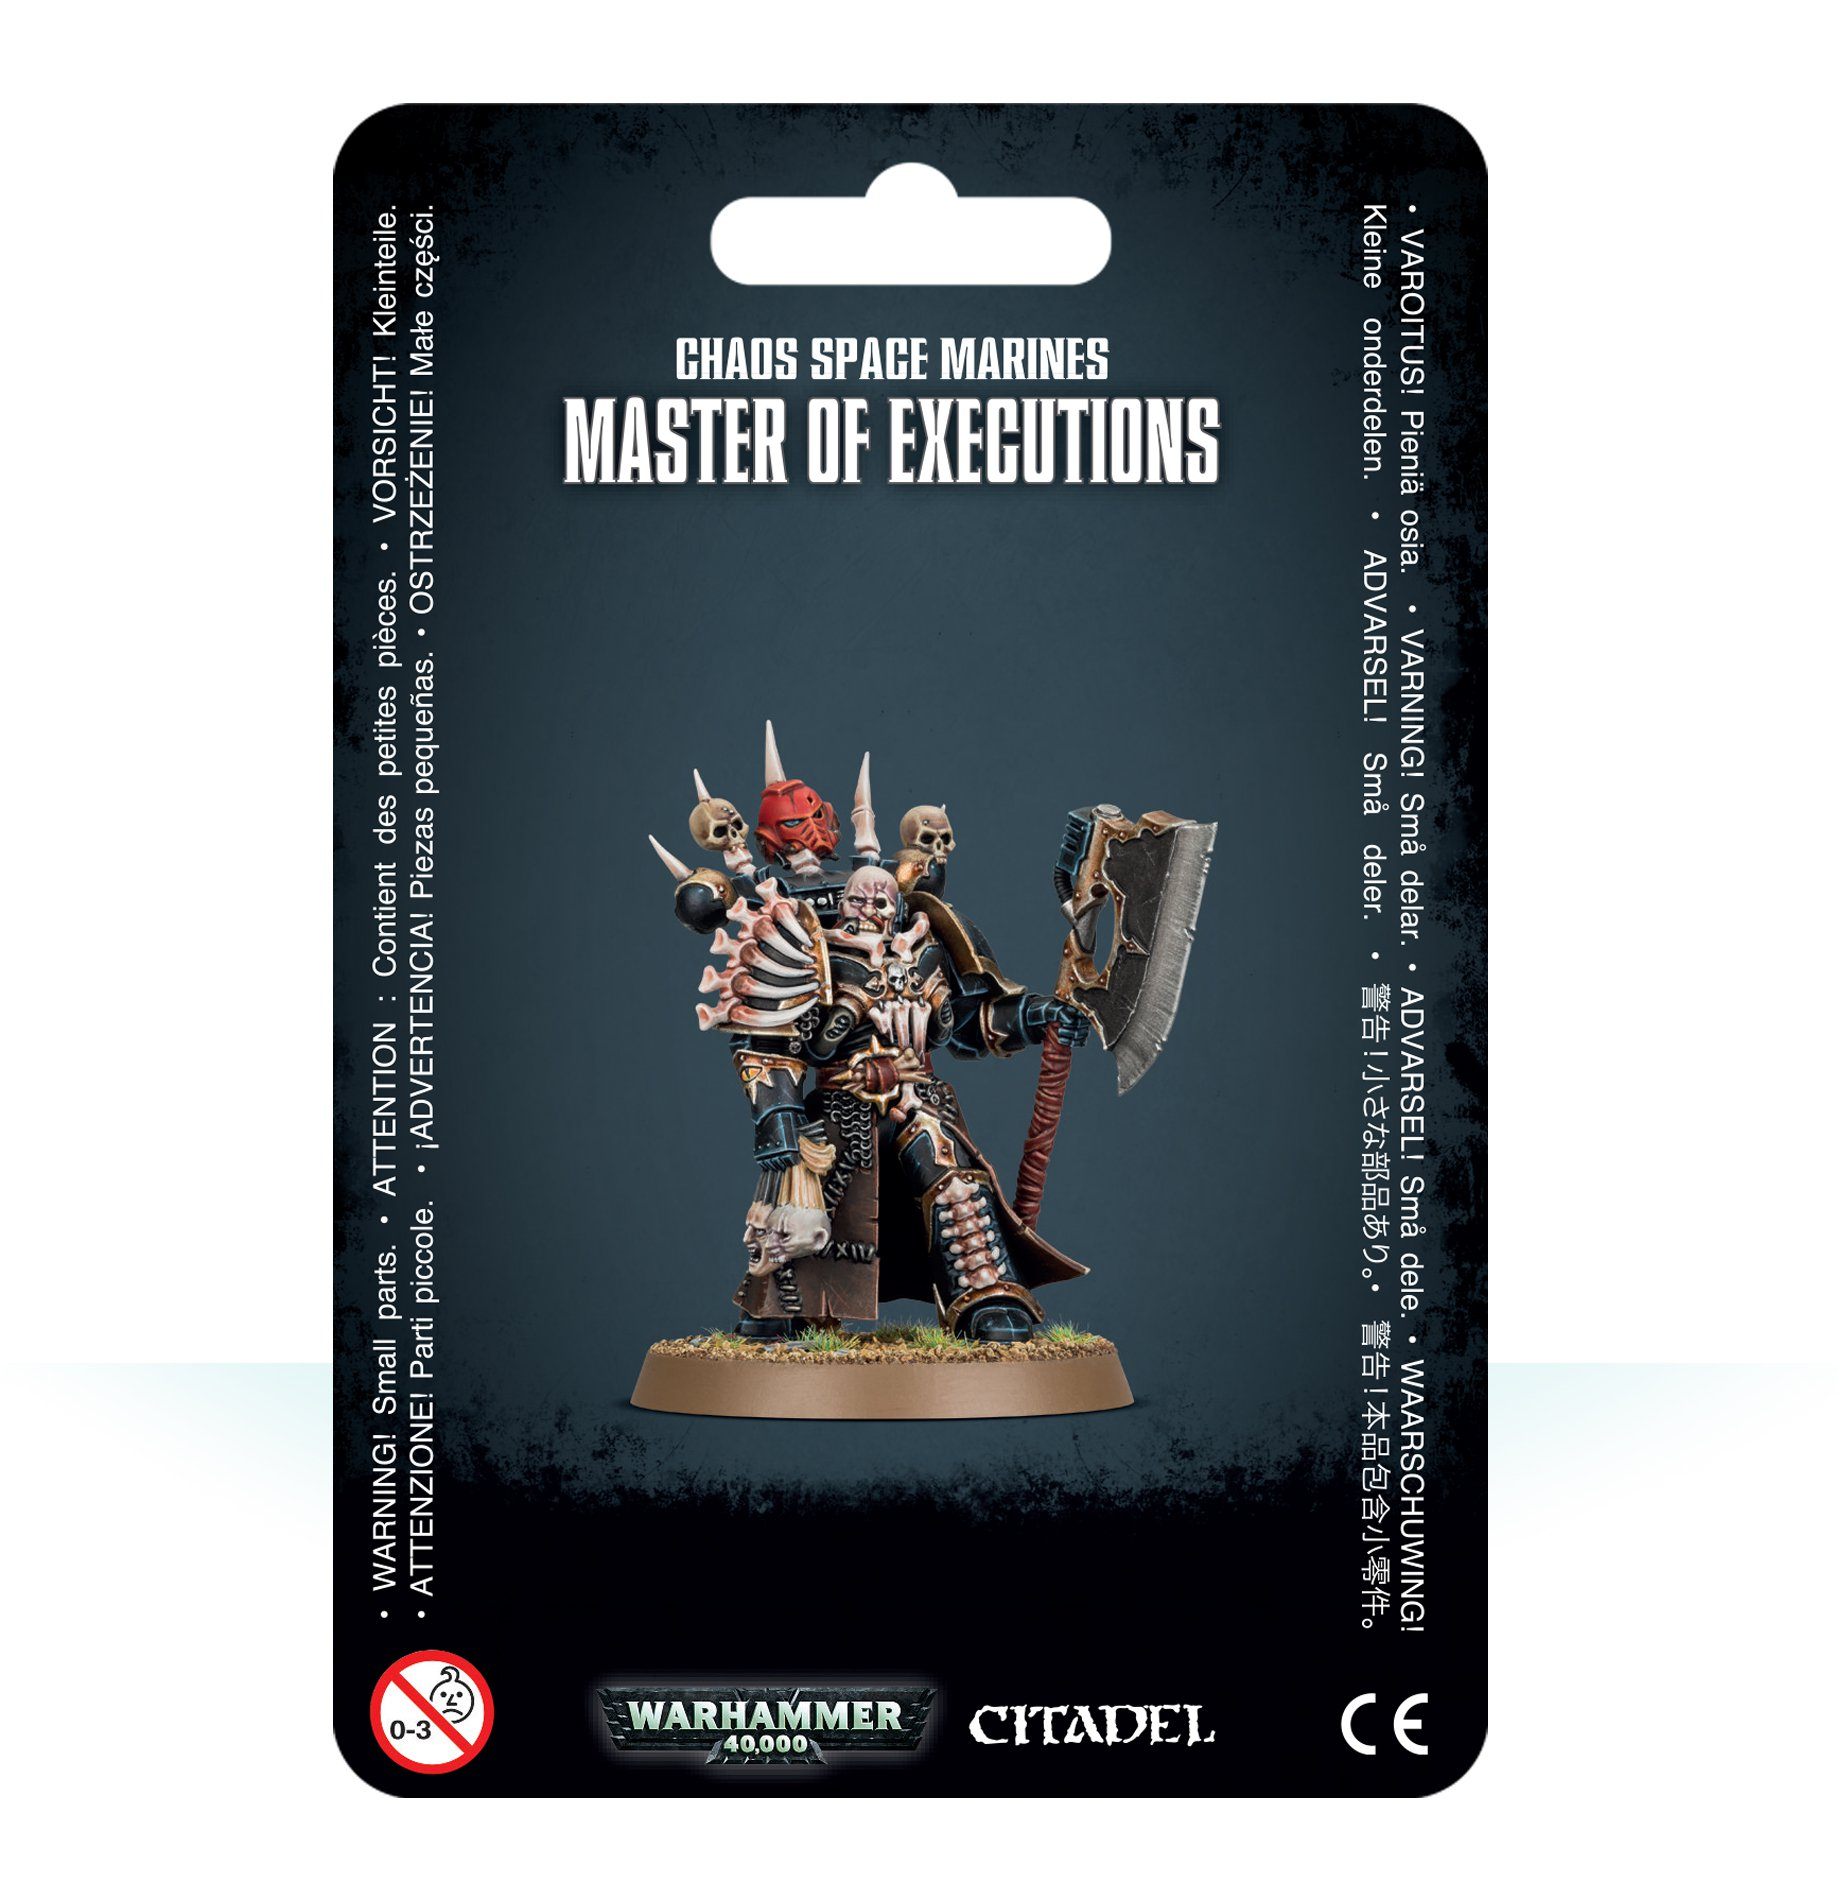 Warhammer 40,000: Chaos Space Marines: Master of Executions